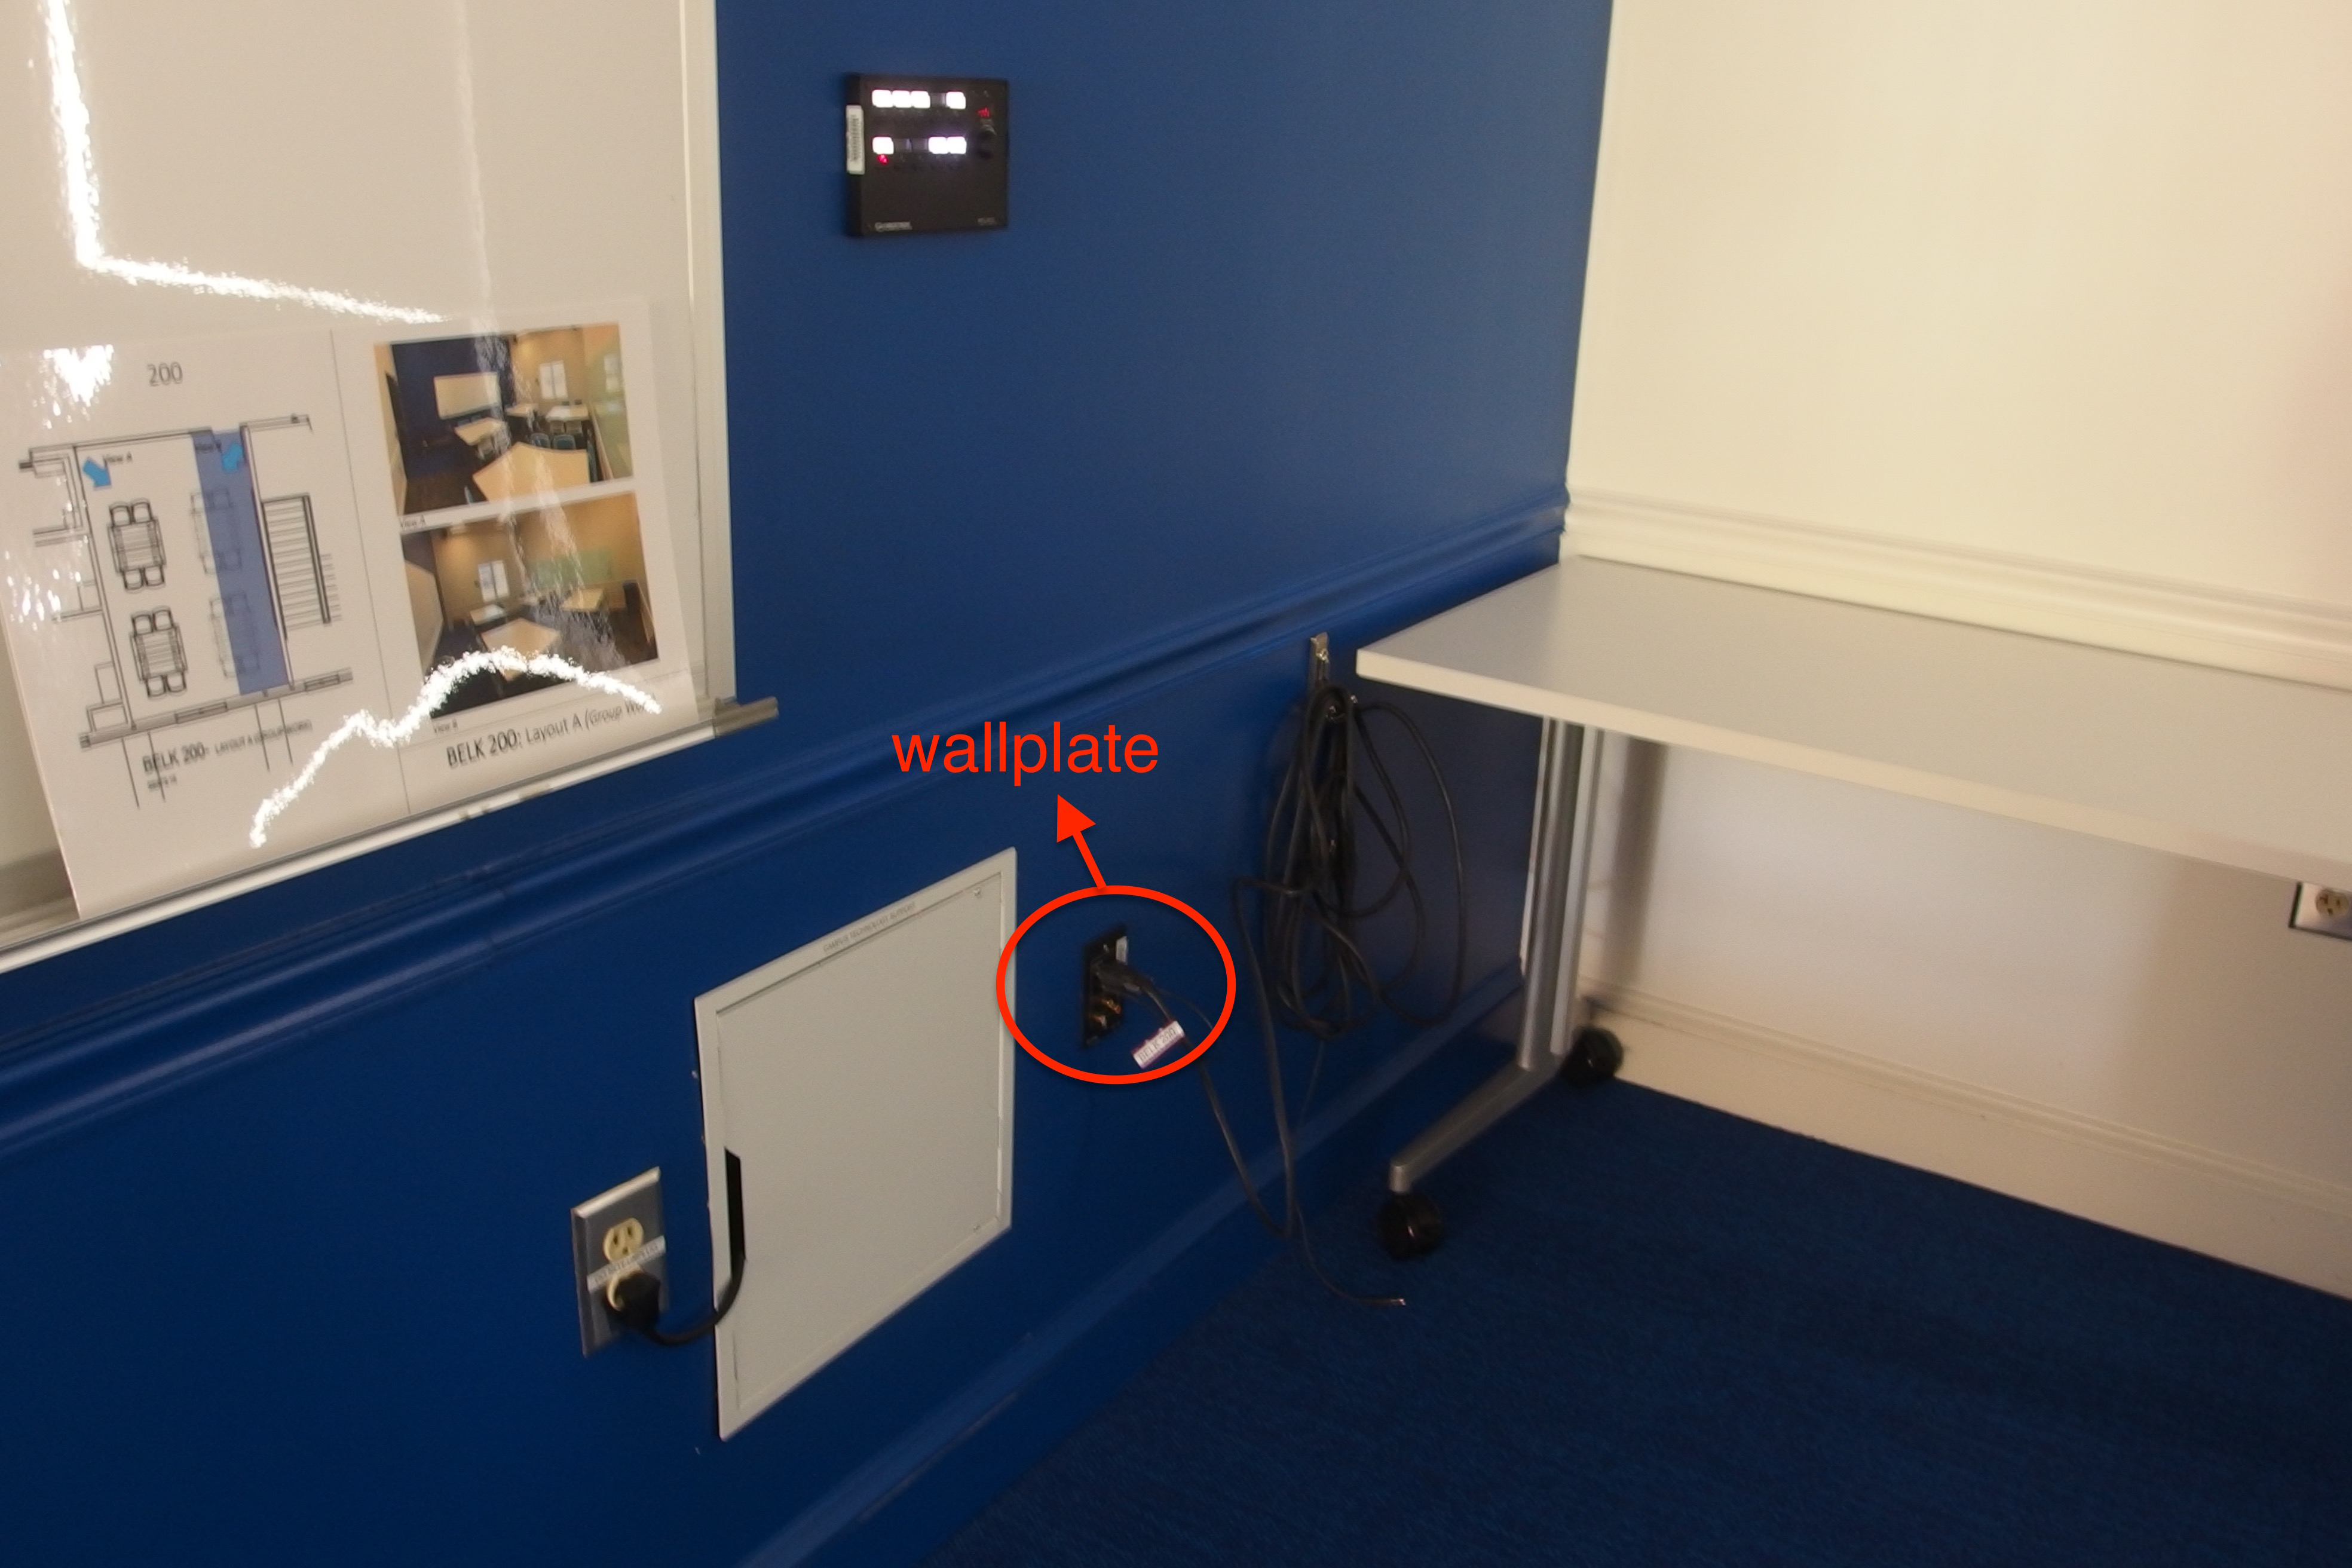 A photo of the wall plate in the lower left hand corner of the room.